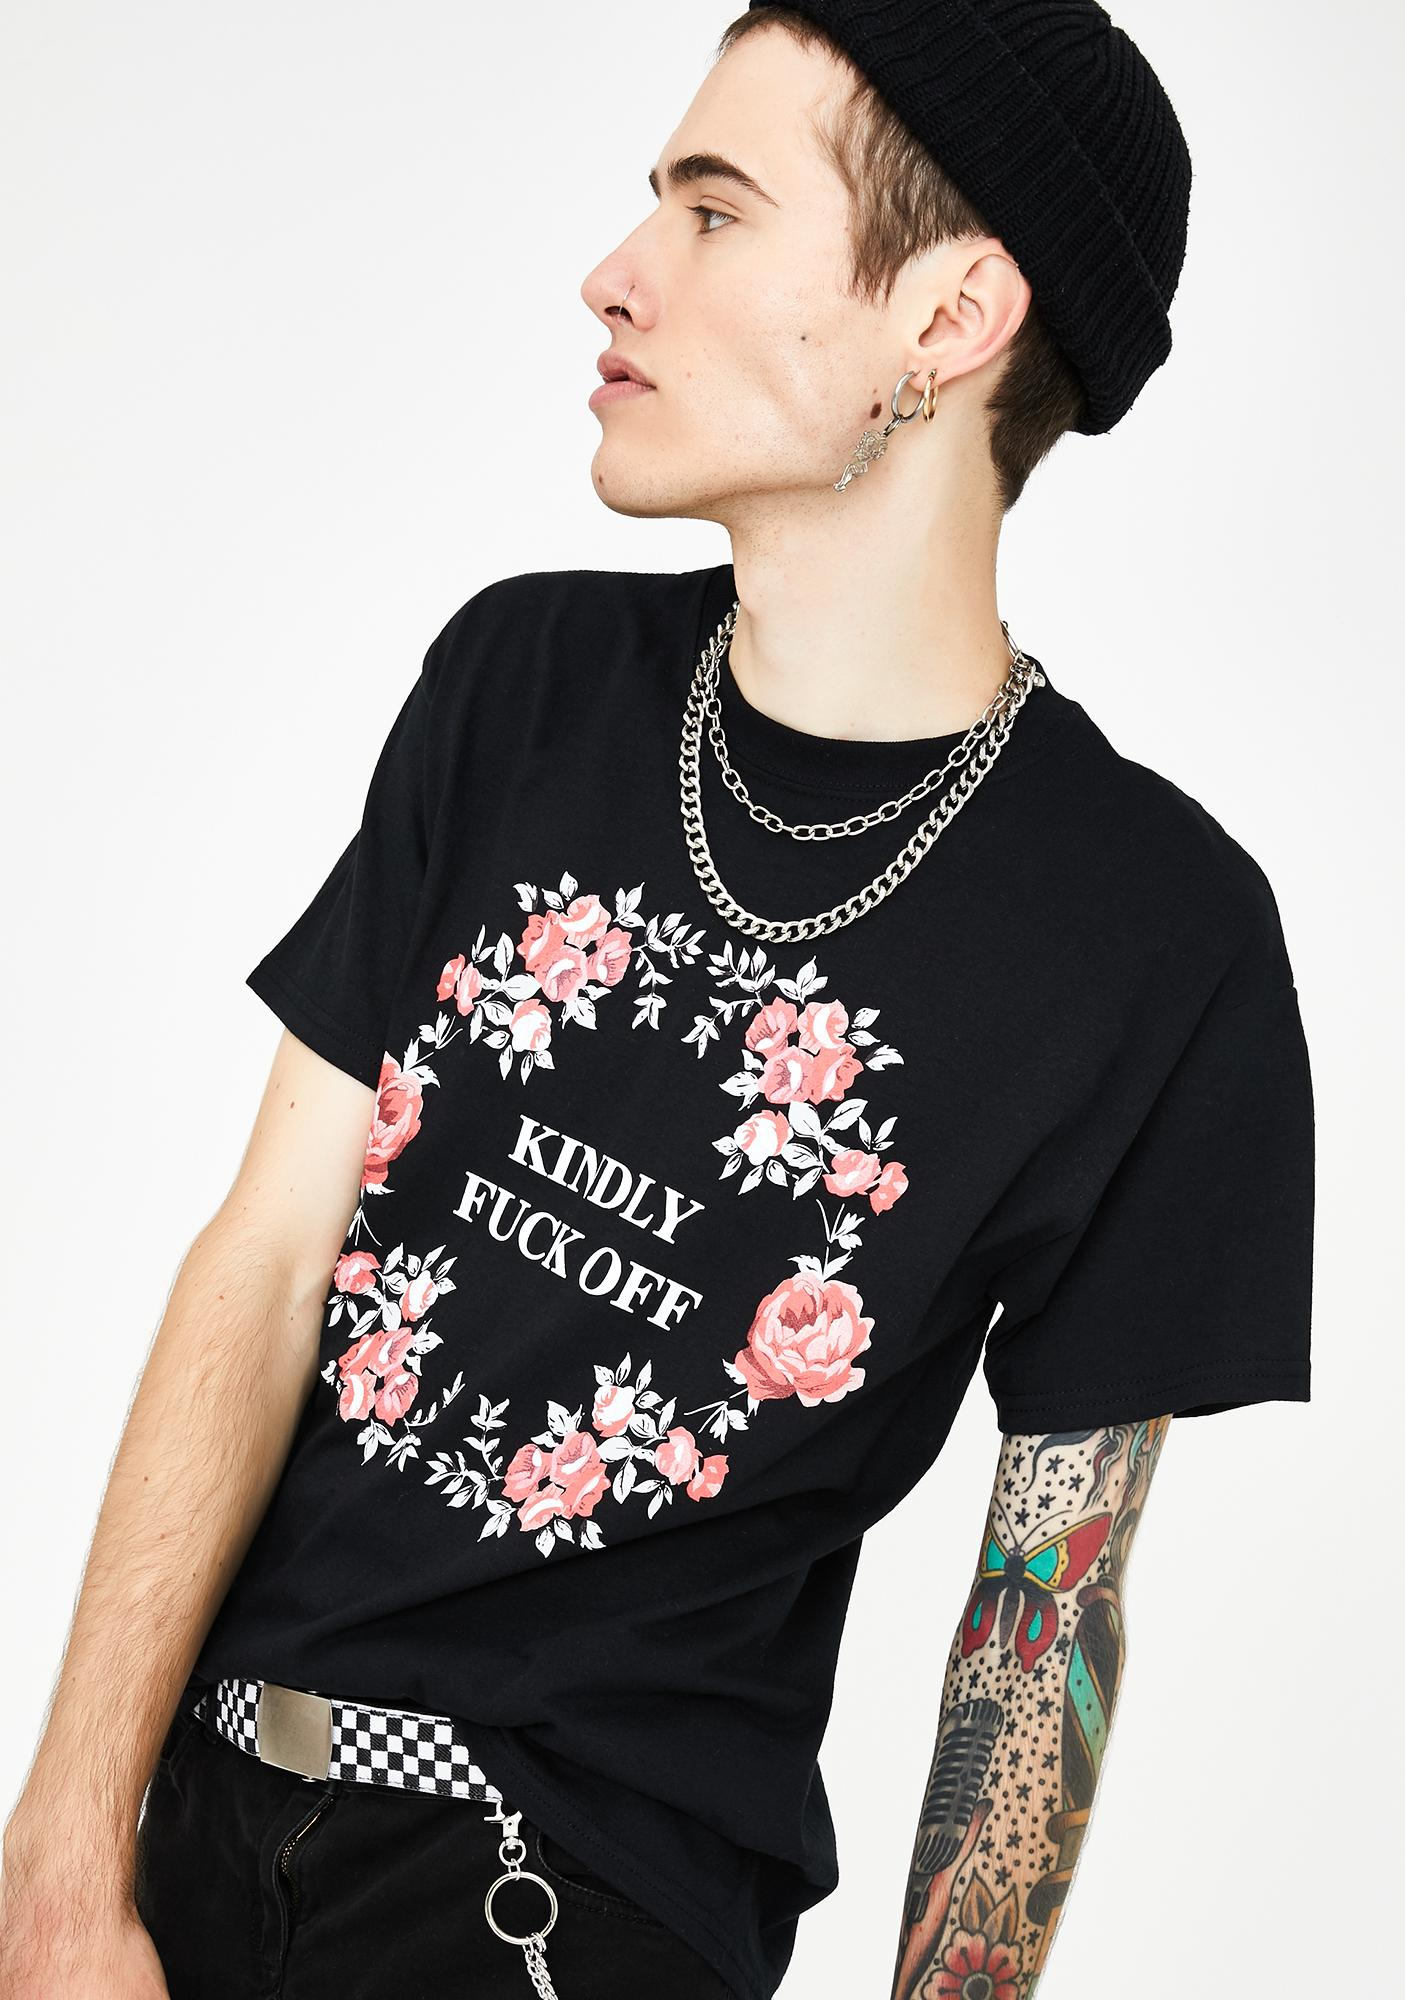 Petals and Peacocks Kindly Graphic Tee